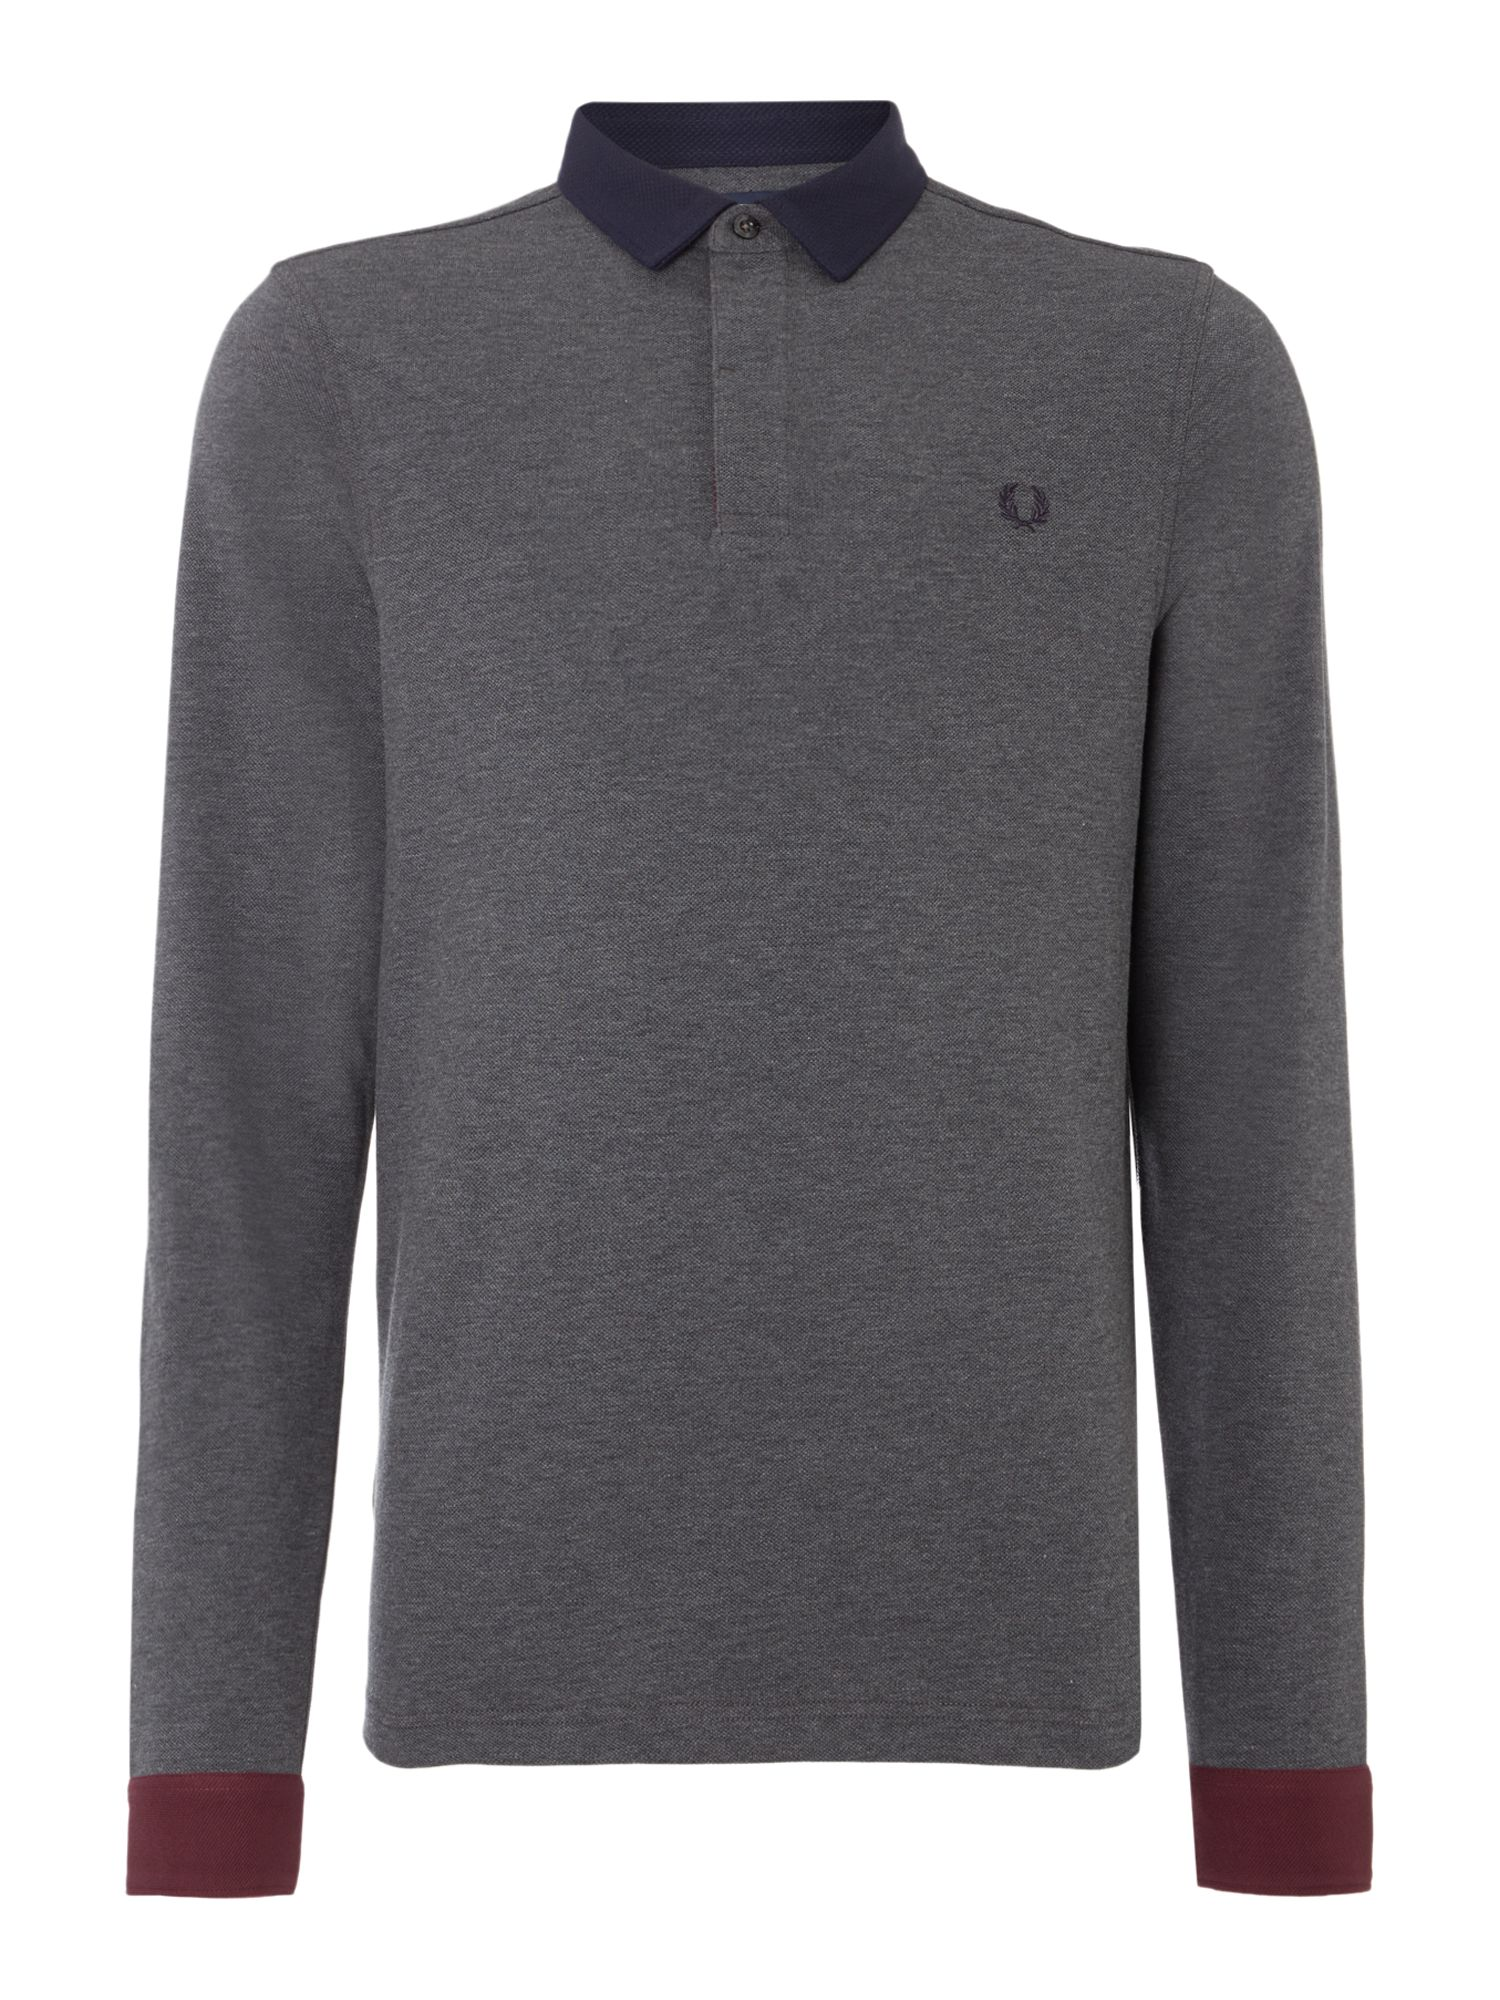 Mens Fred Perry Long Sleeve Woven Trim Pique Polo Shirt Graphite